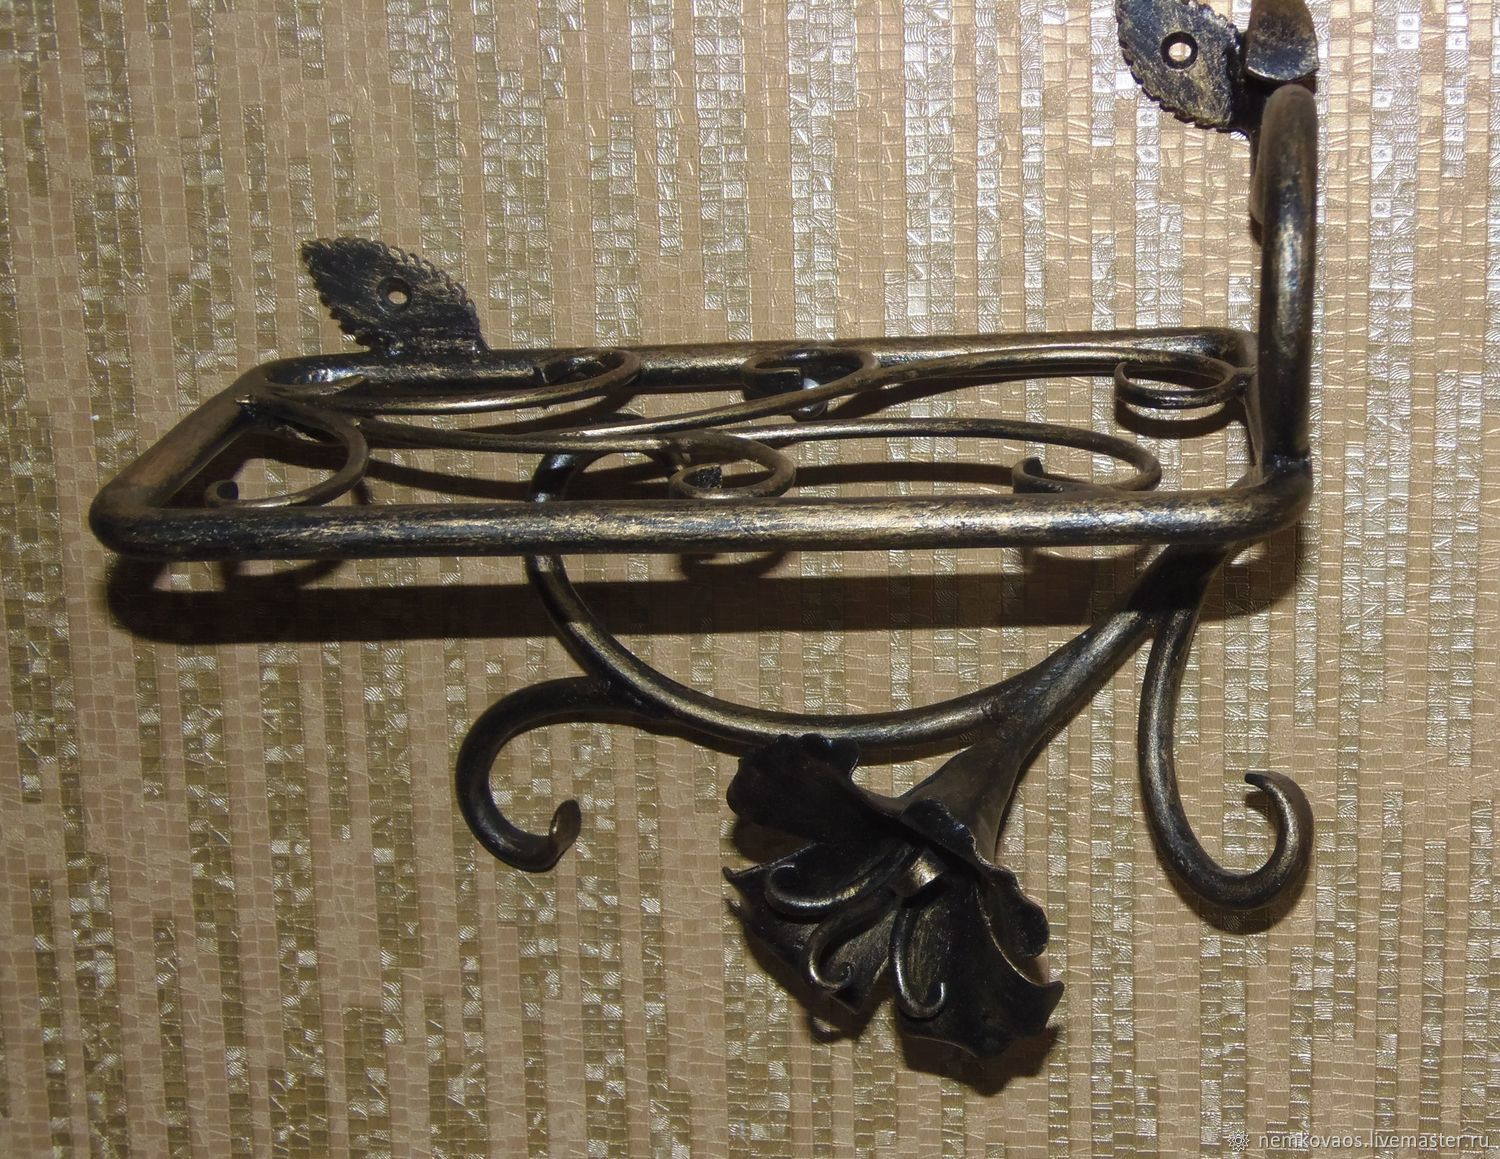 Buy wrought iron wall shelf with flower on livemaster online shop order wrought iron wall shelf with flower artistic forging nemkova livemaster amipublicfo Choice Image